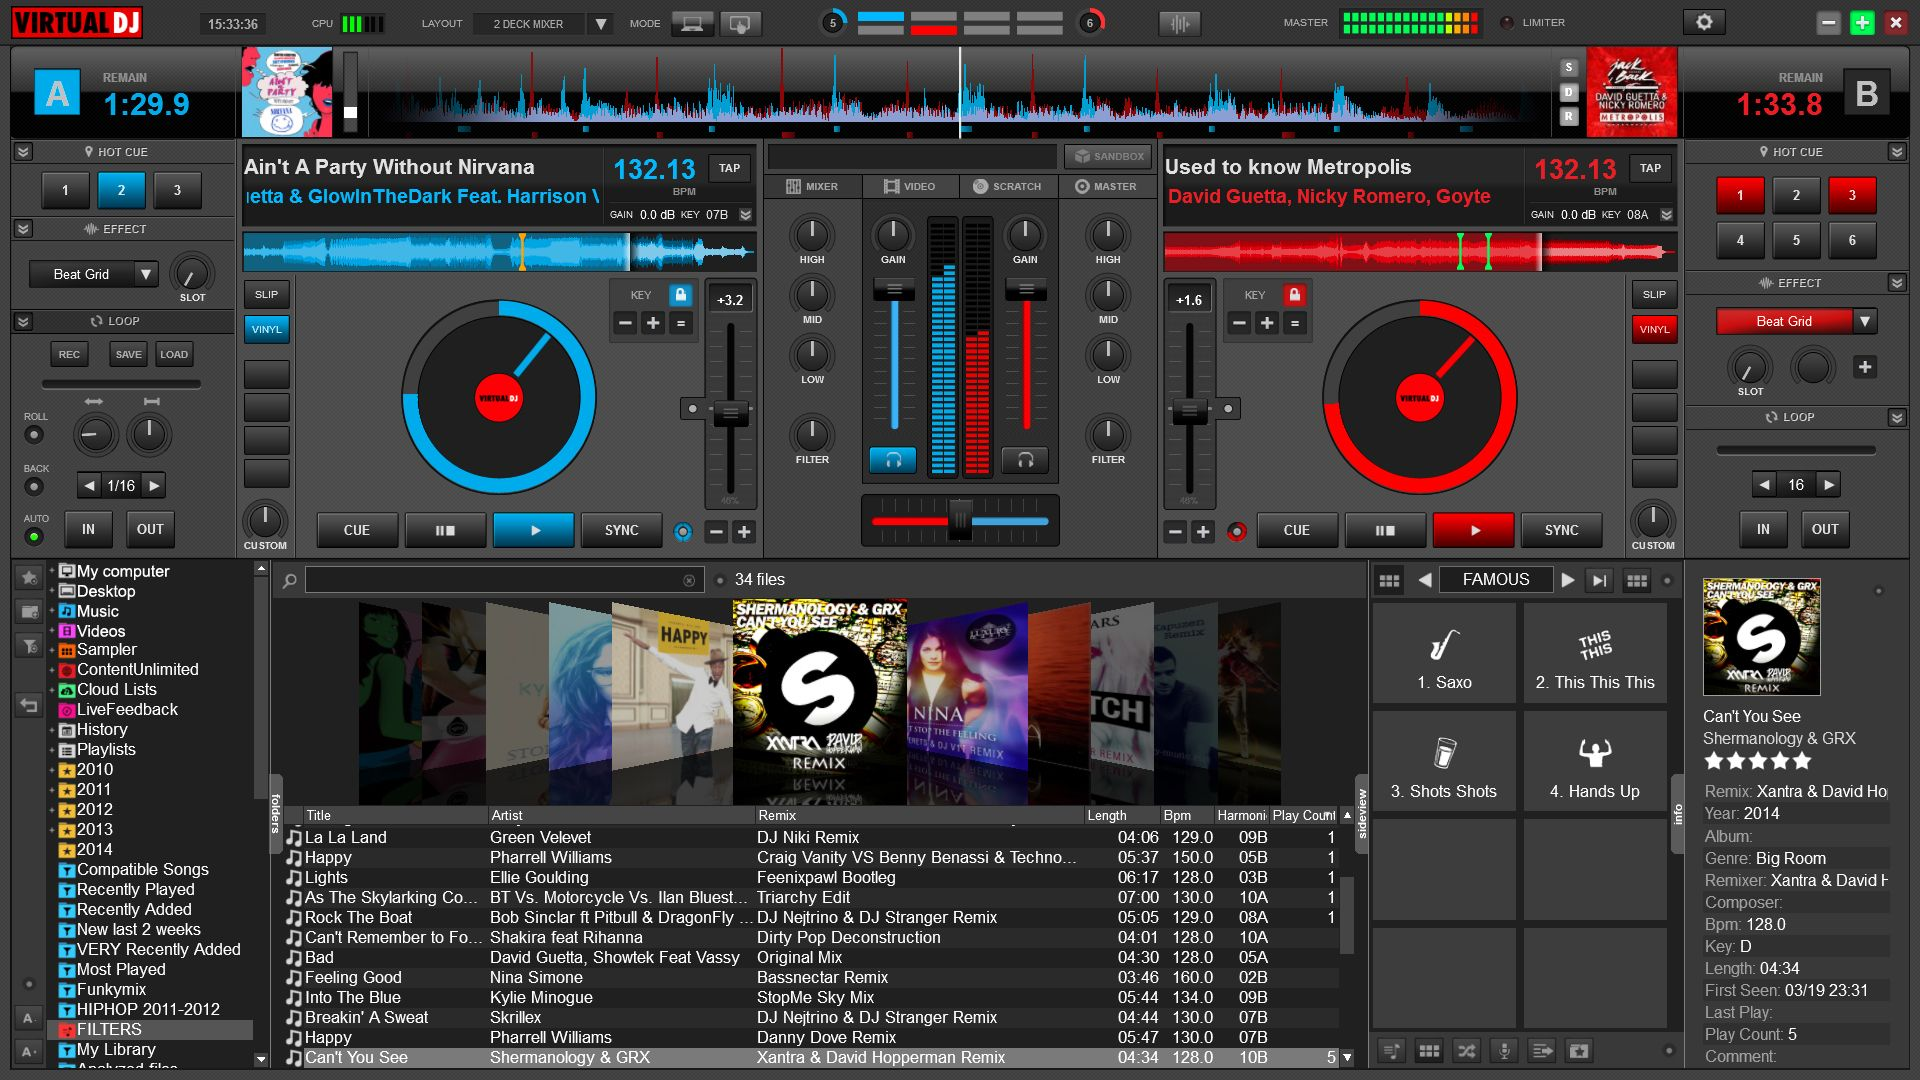 VirtualDJ Pro Infinity v8.4.5308 Free Download